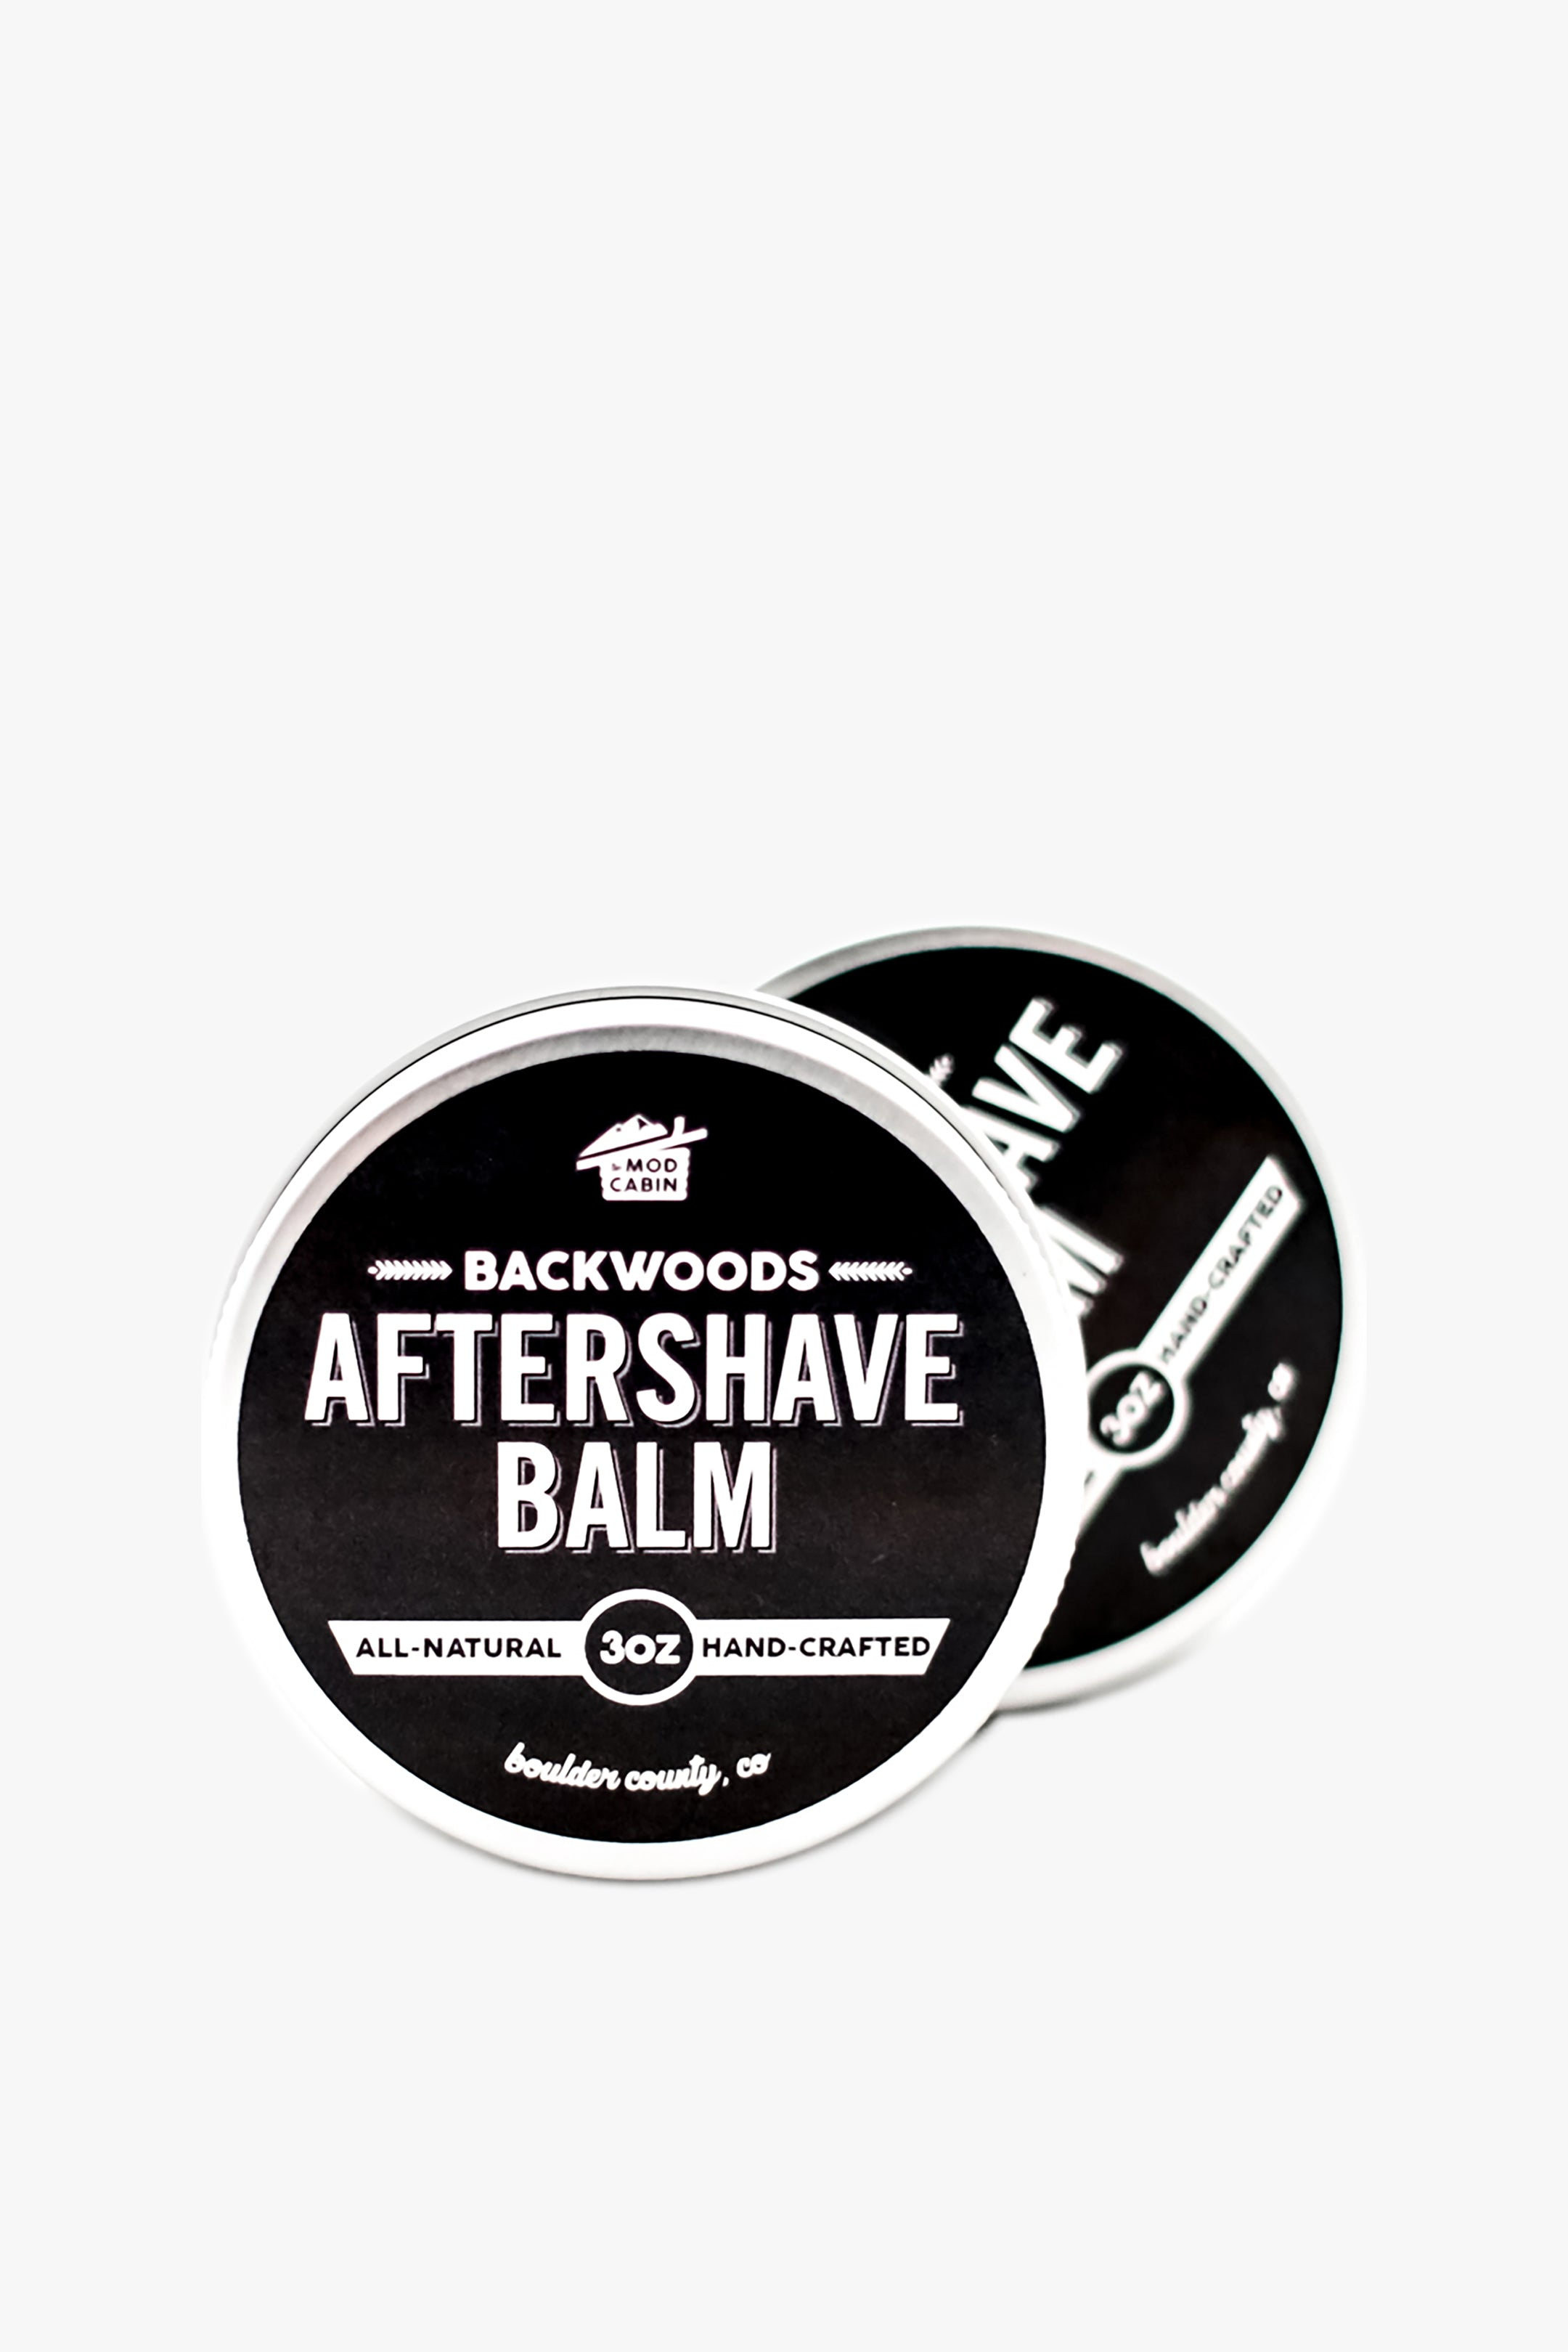 Aftershave Balm - Backwoods